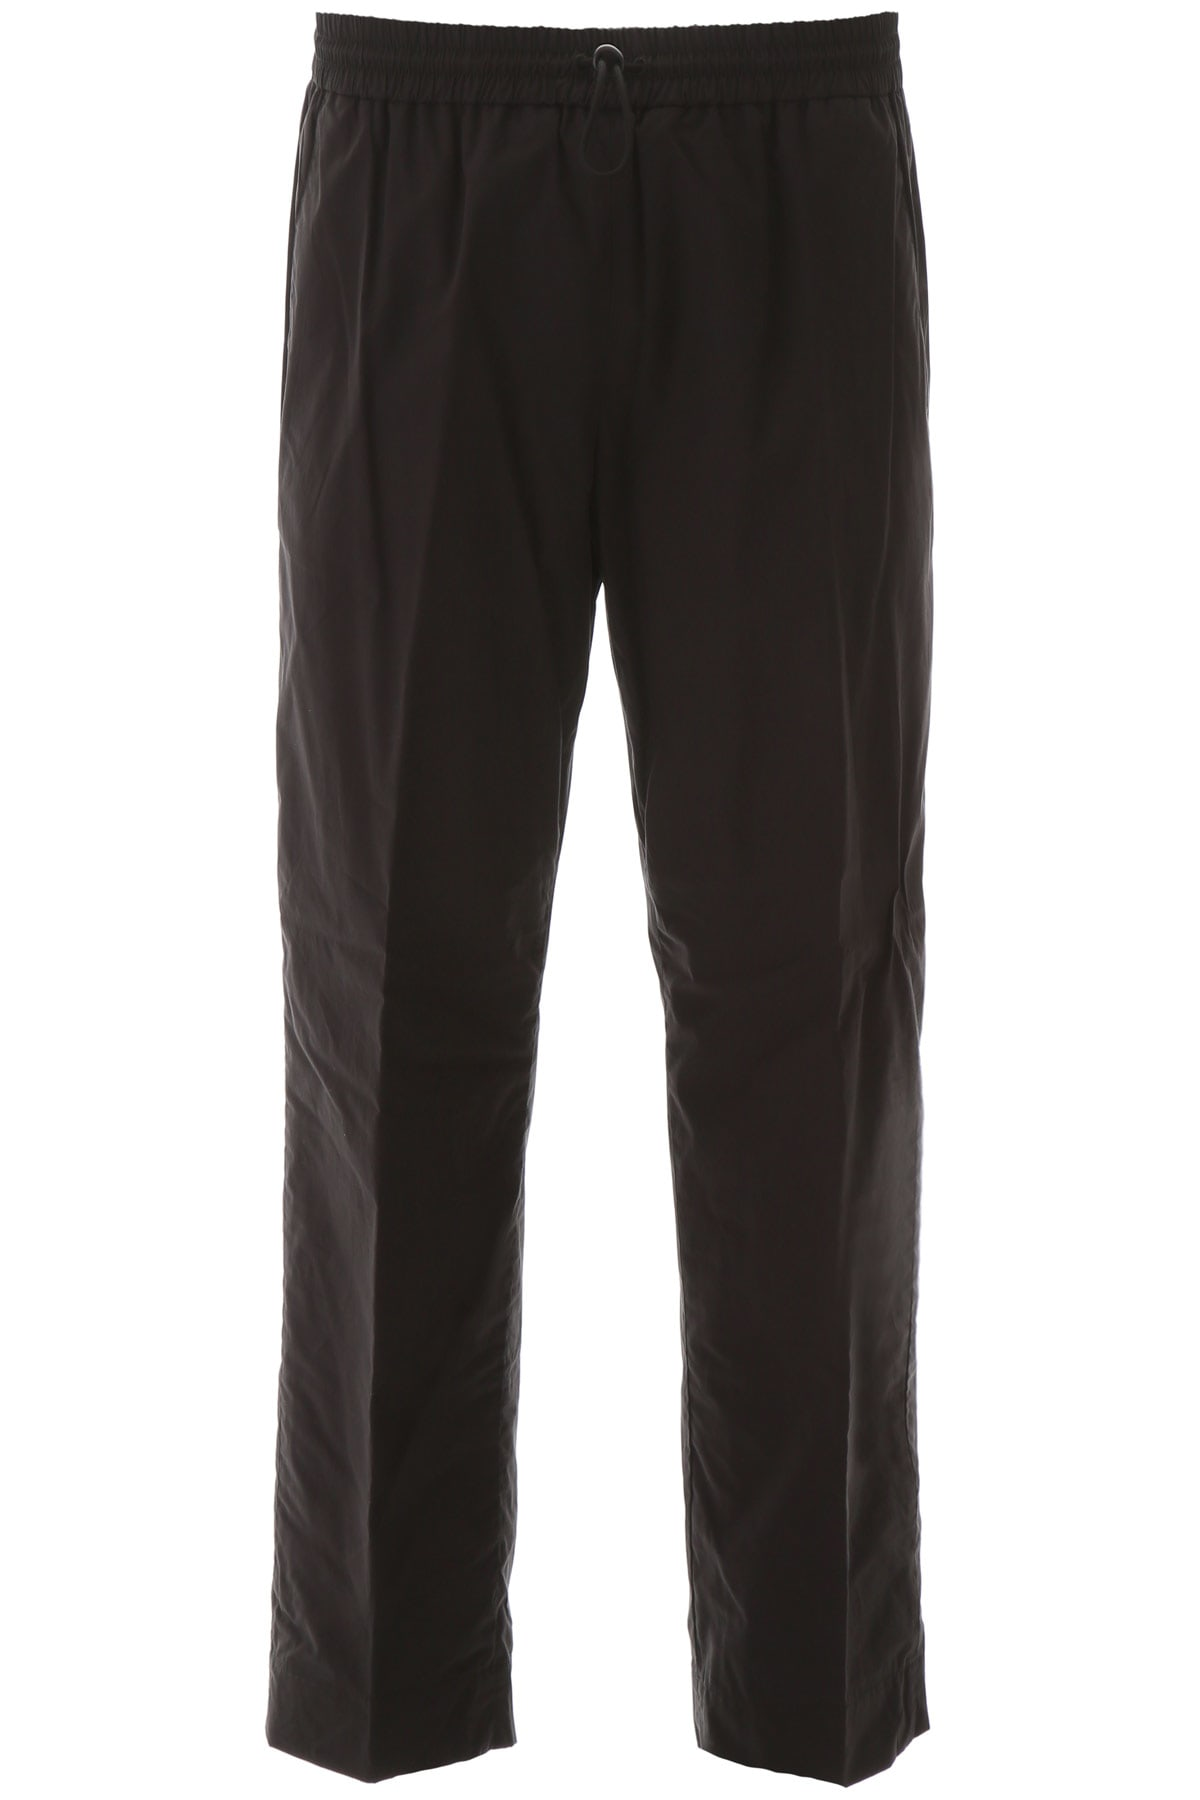 Kenzo Cropped Joggers